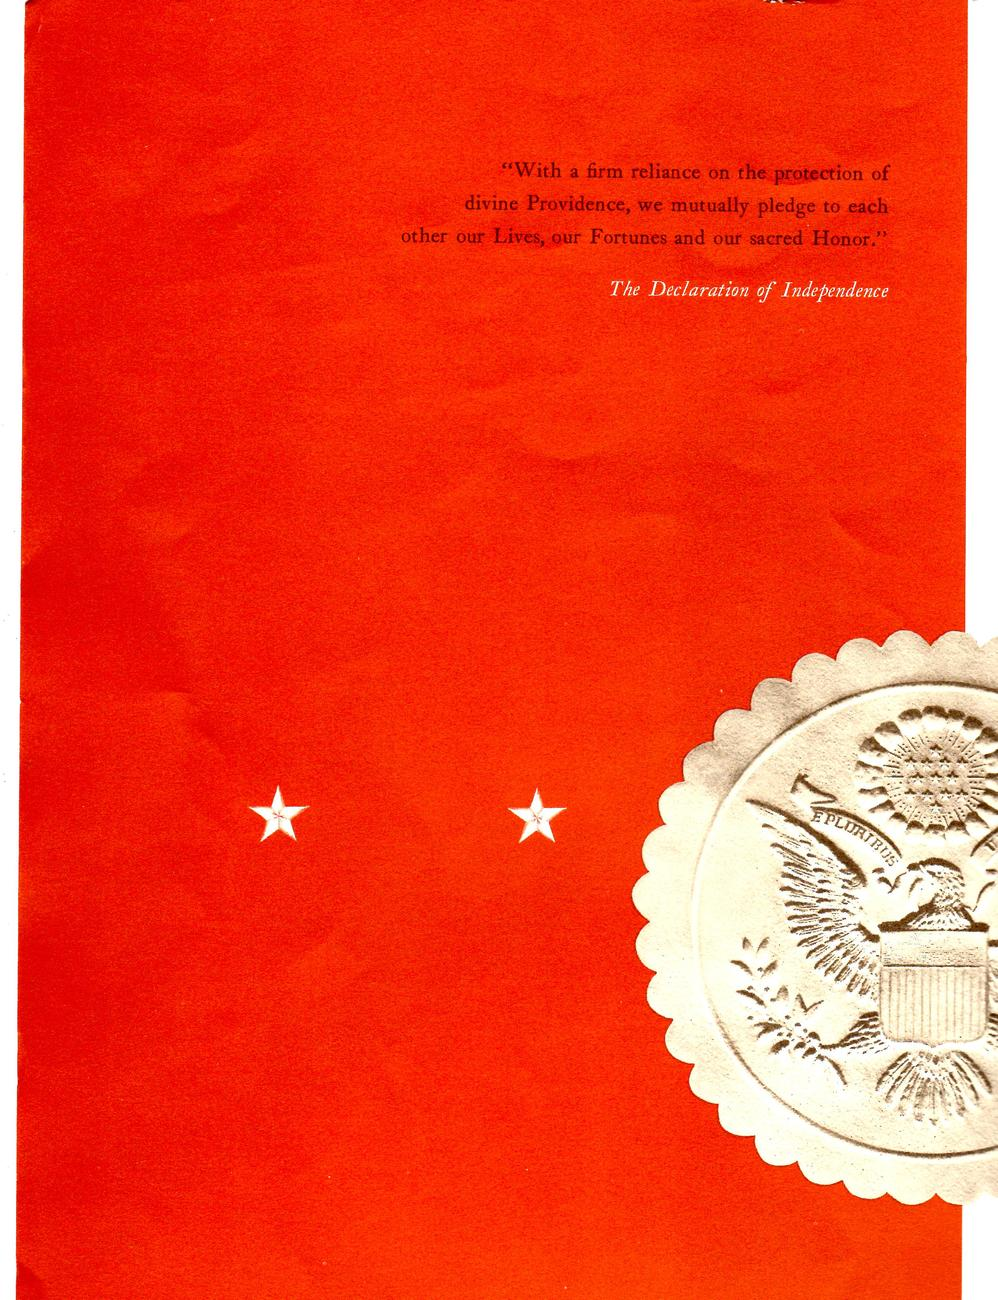 Charters Of Freedom (copyright 1952)